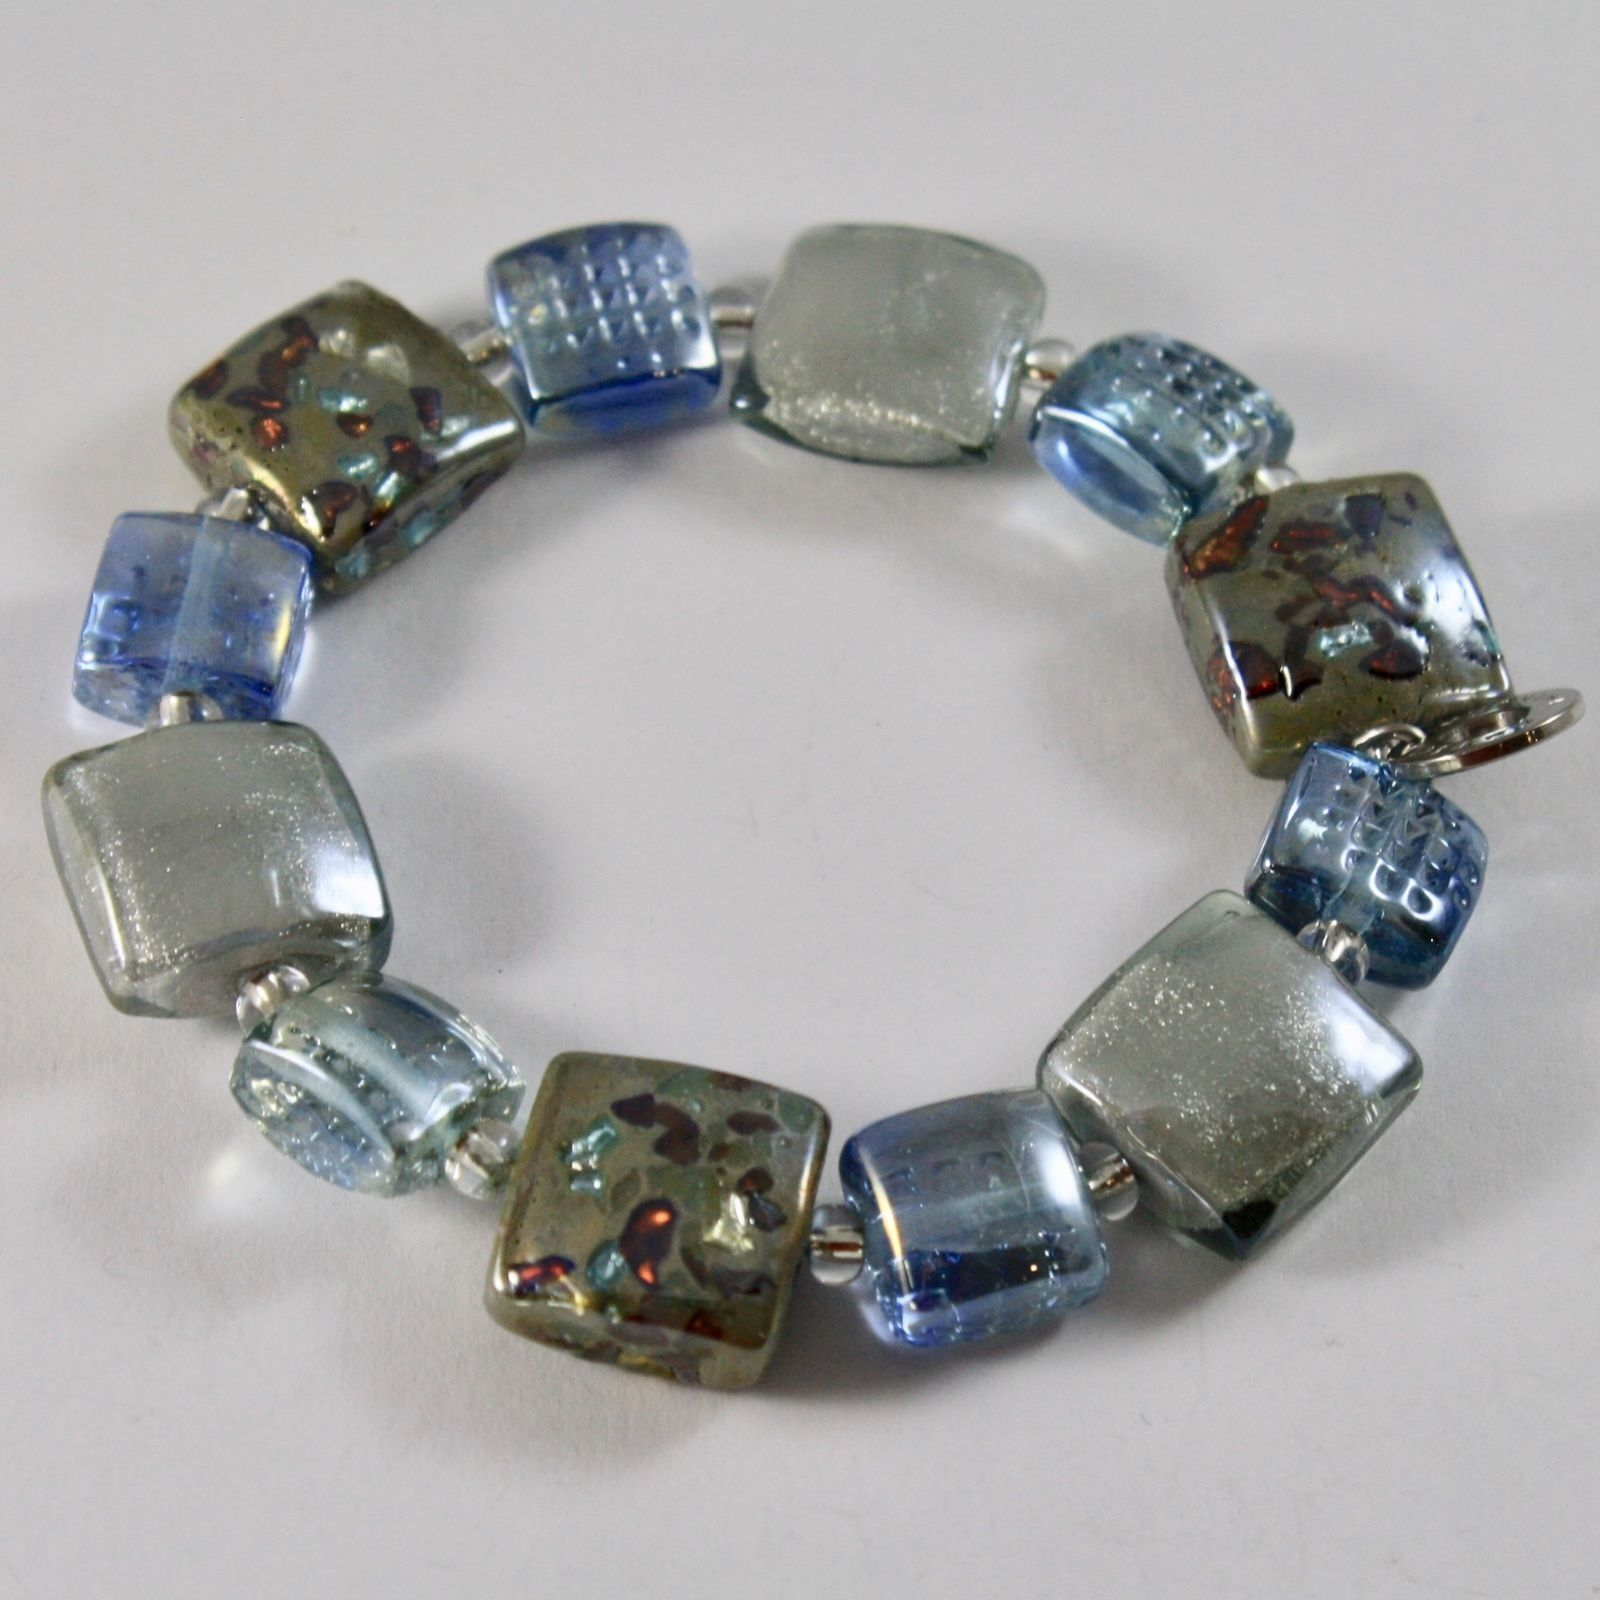 ANTICA MURRINA VENEZIA BRACELET WITH MULTICOLOR MURANO GLASS SQUARES, BLUE GRAY